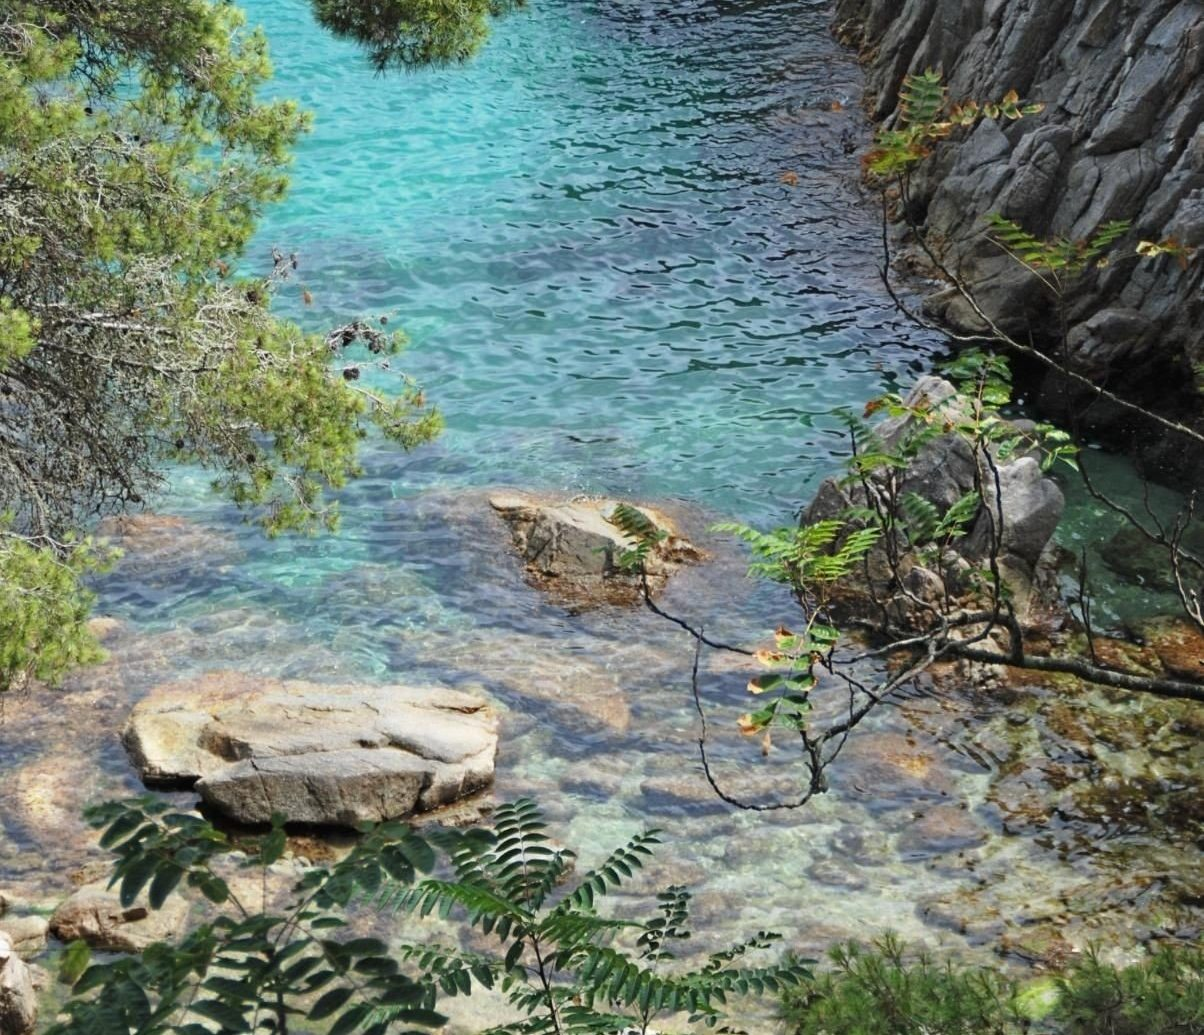 Offbeat outdoor tree rock wilderness body of water River ecosystem water stream Nature botany Forest woodland water feature rapid Jungle rainforest flower autumn hillside surrounded